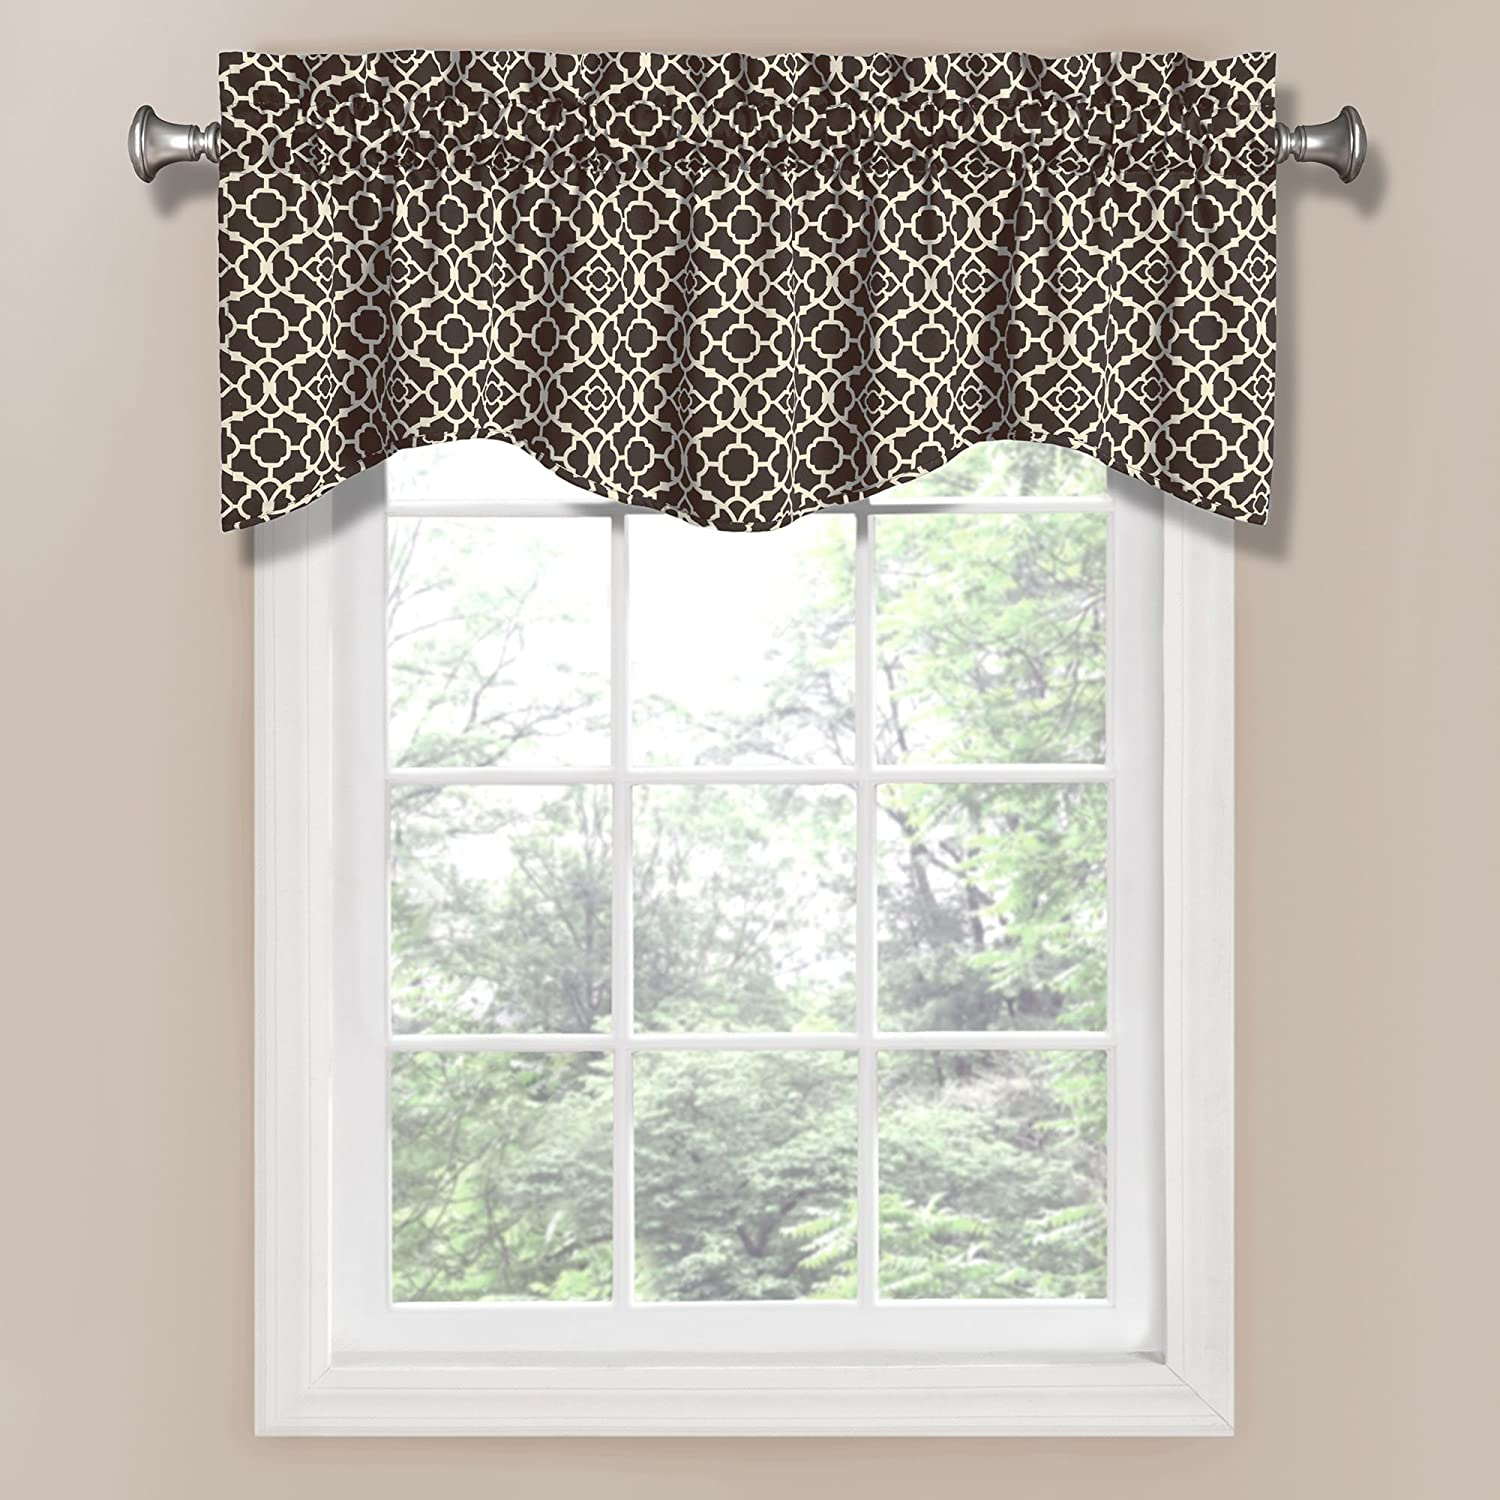 Waverly Lovely Lattice Valance, Onyx , New, Free Shipping